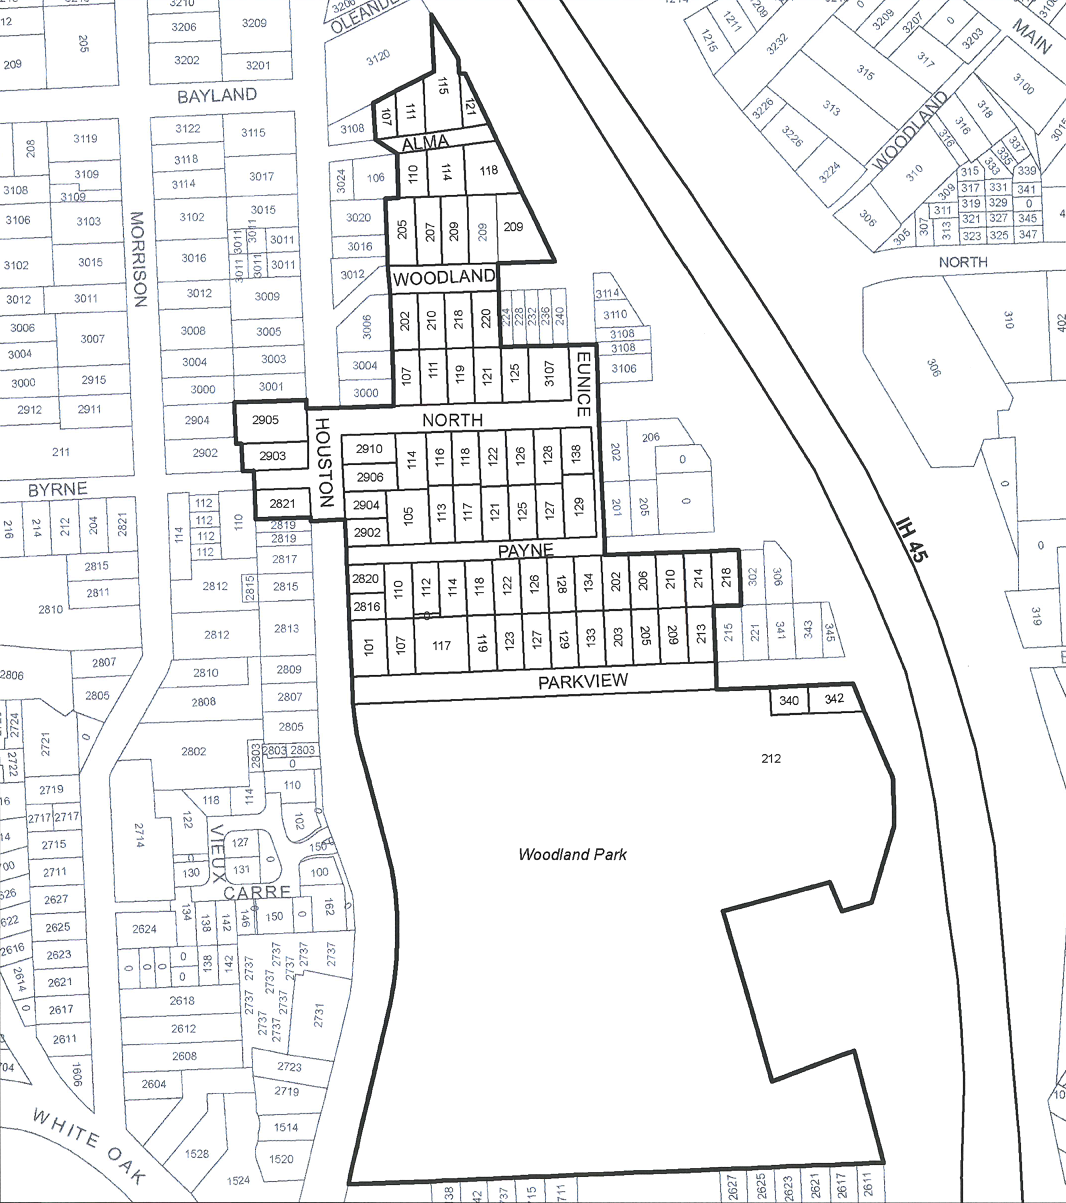 Germantown Historic District was approved on December 5, 2012.